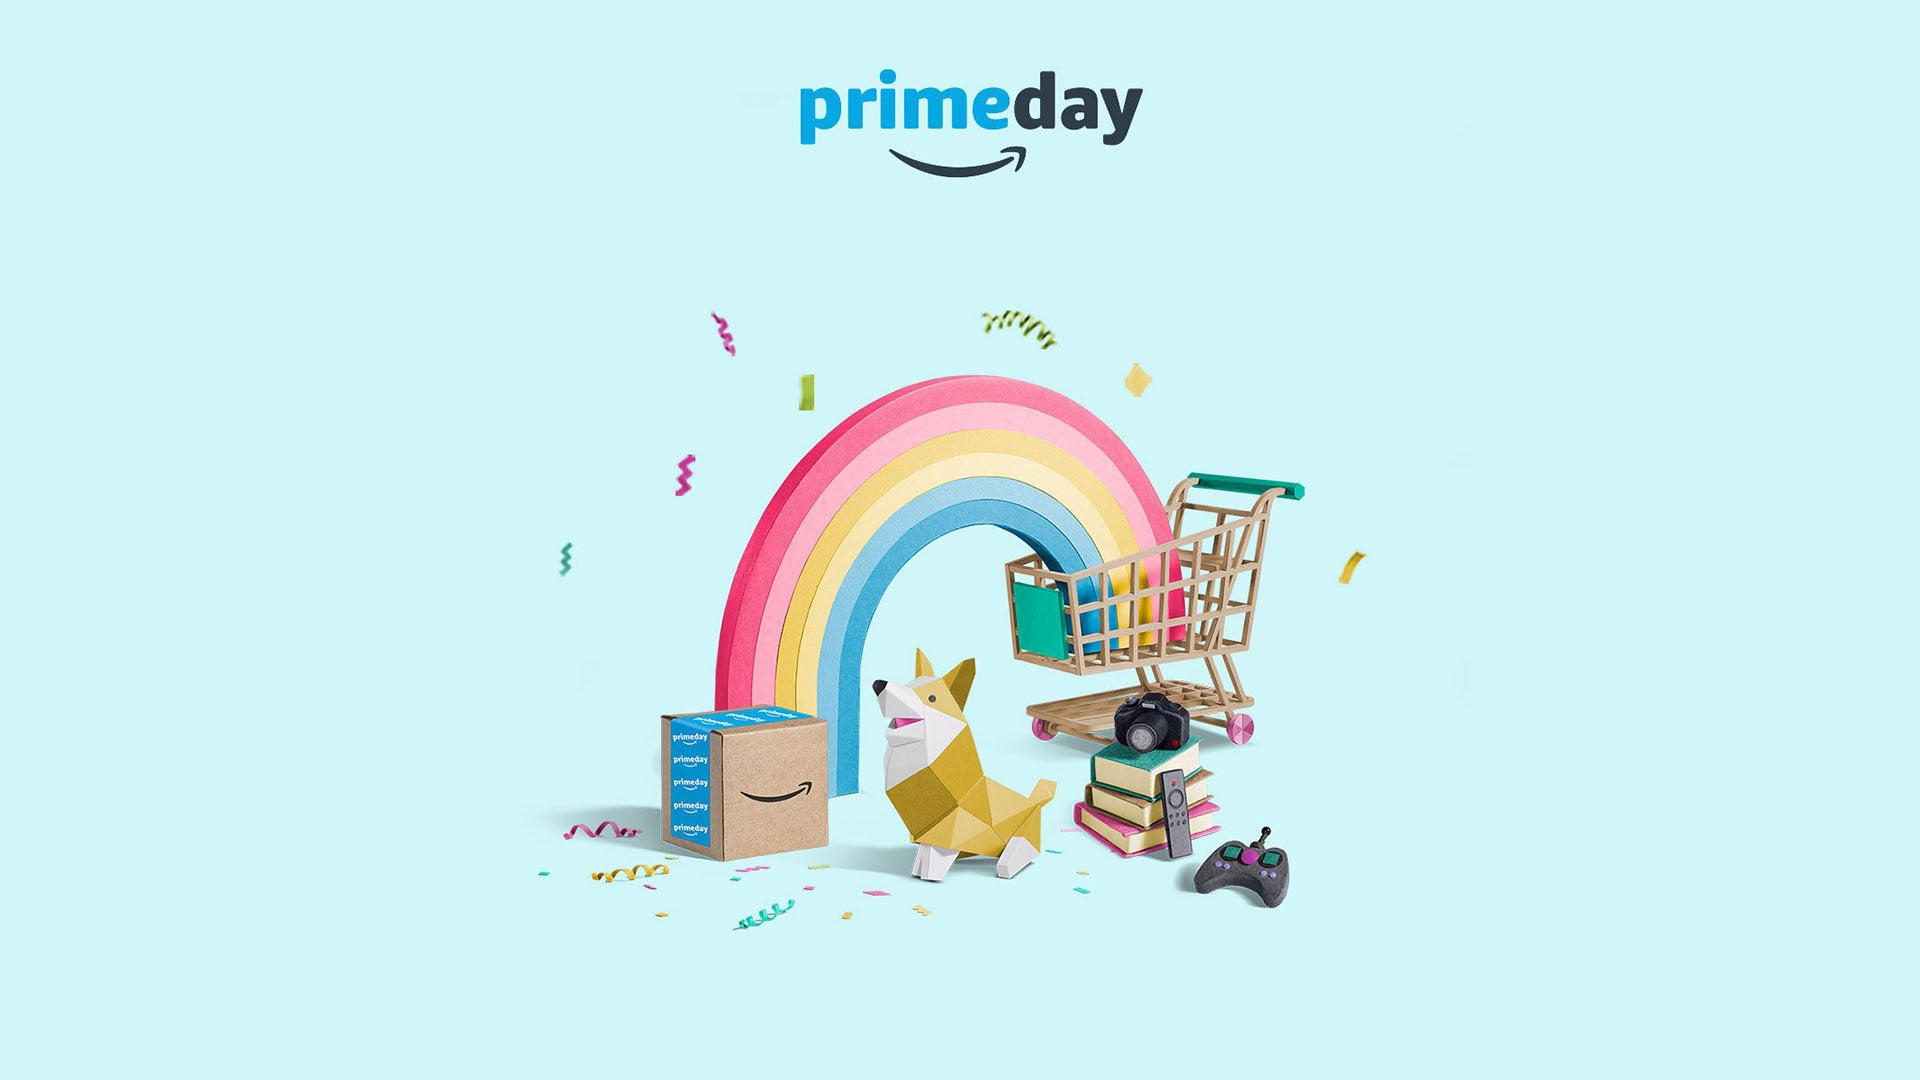 Best Prime Day deals: We've scoured the store so you don't have to - cover